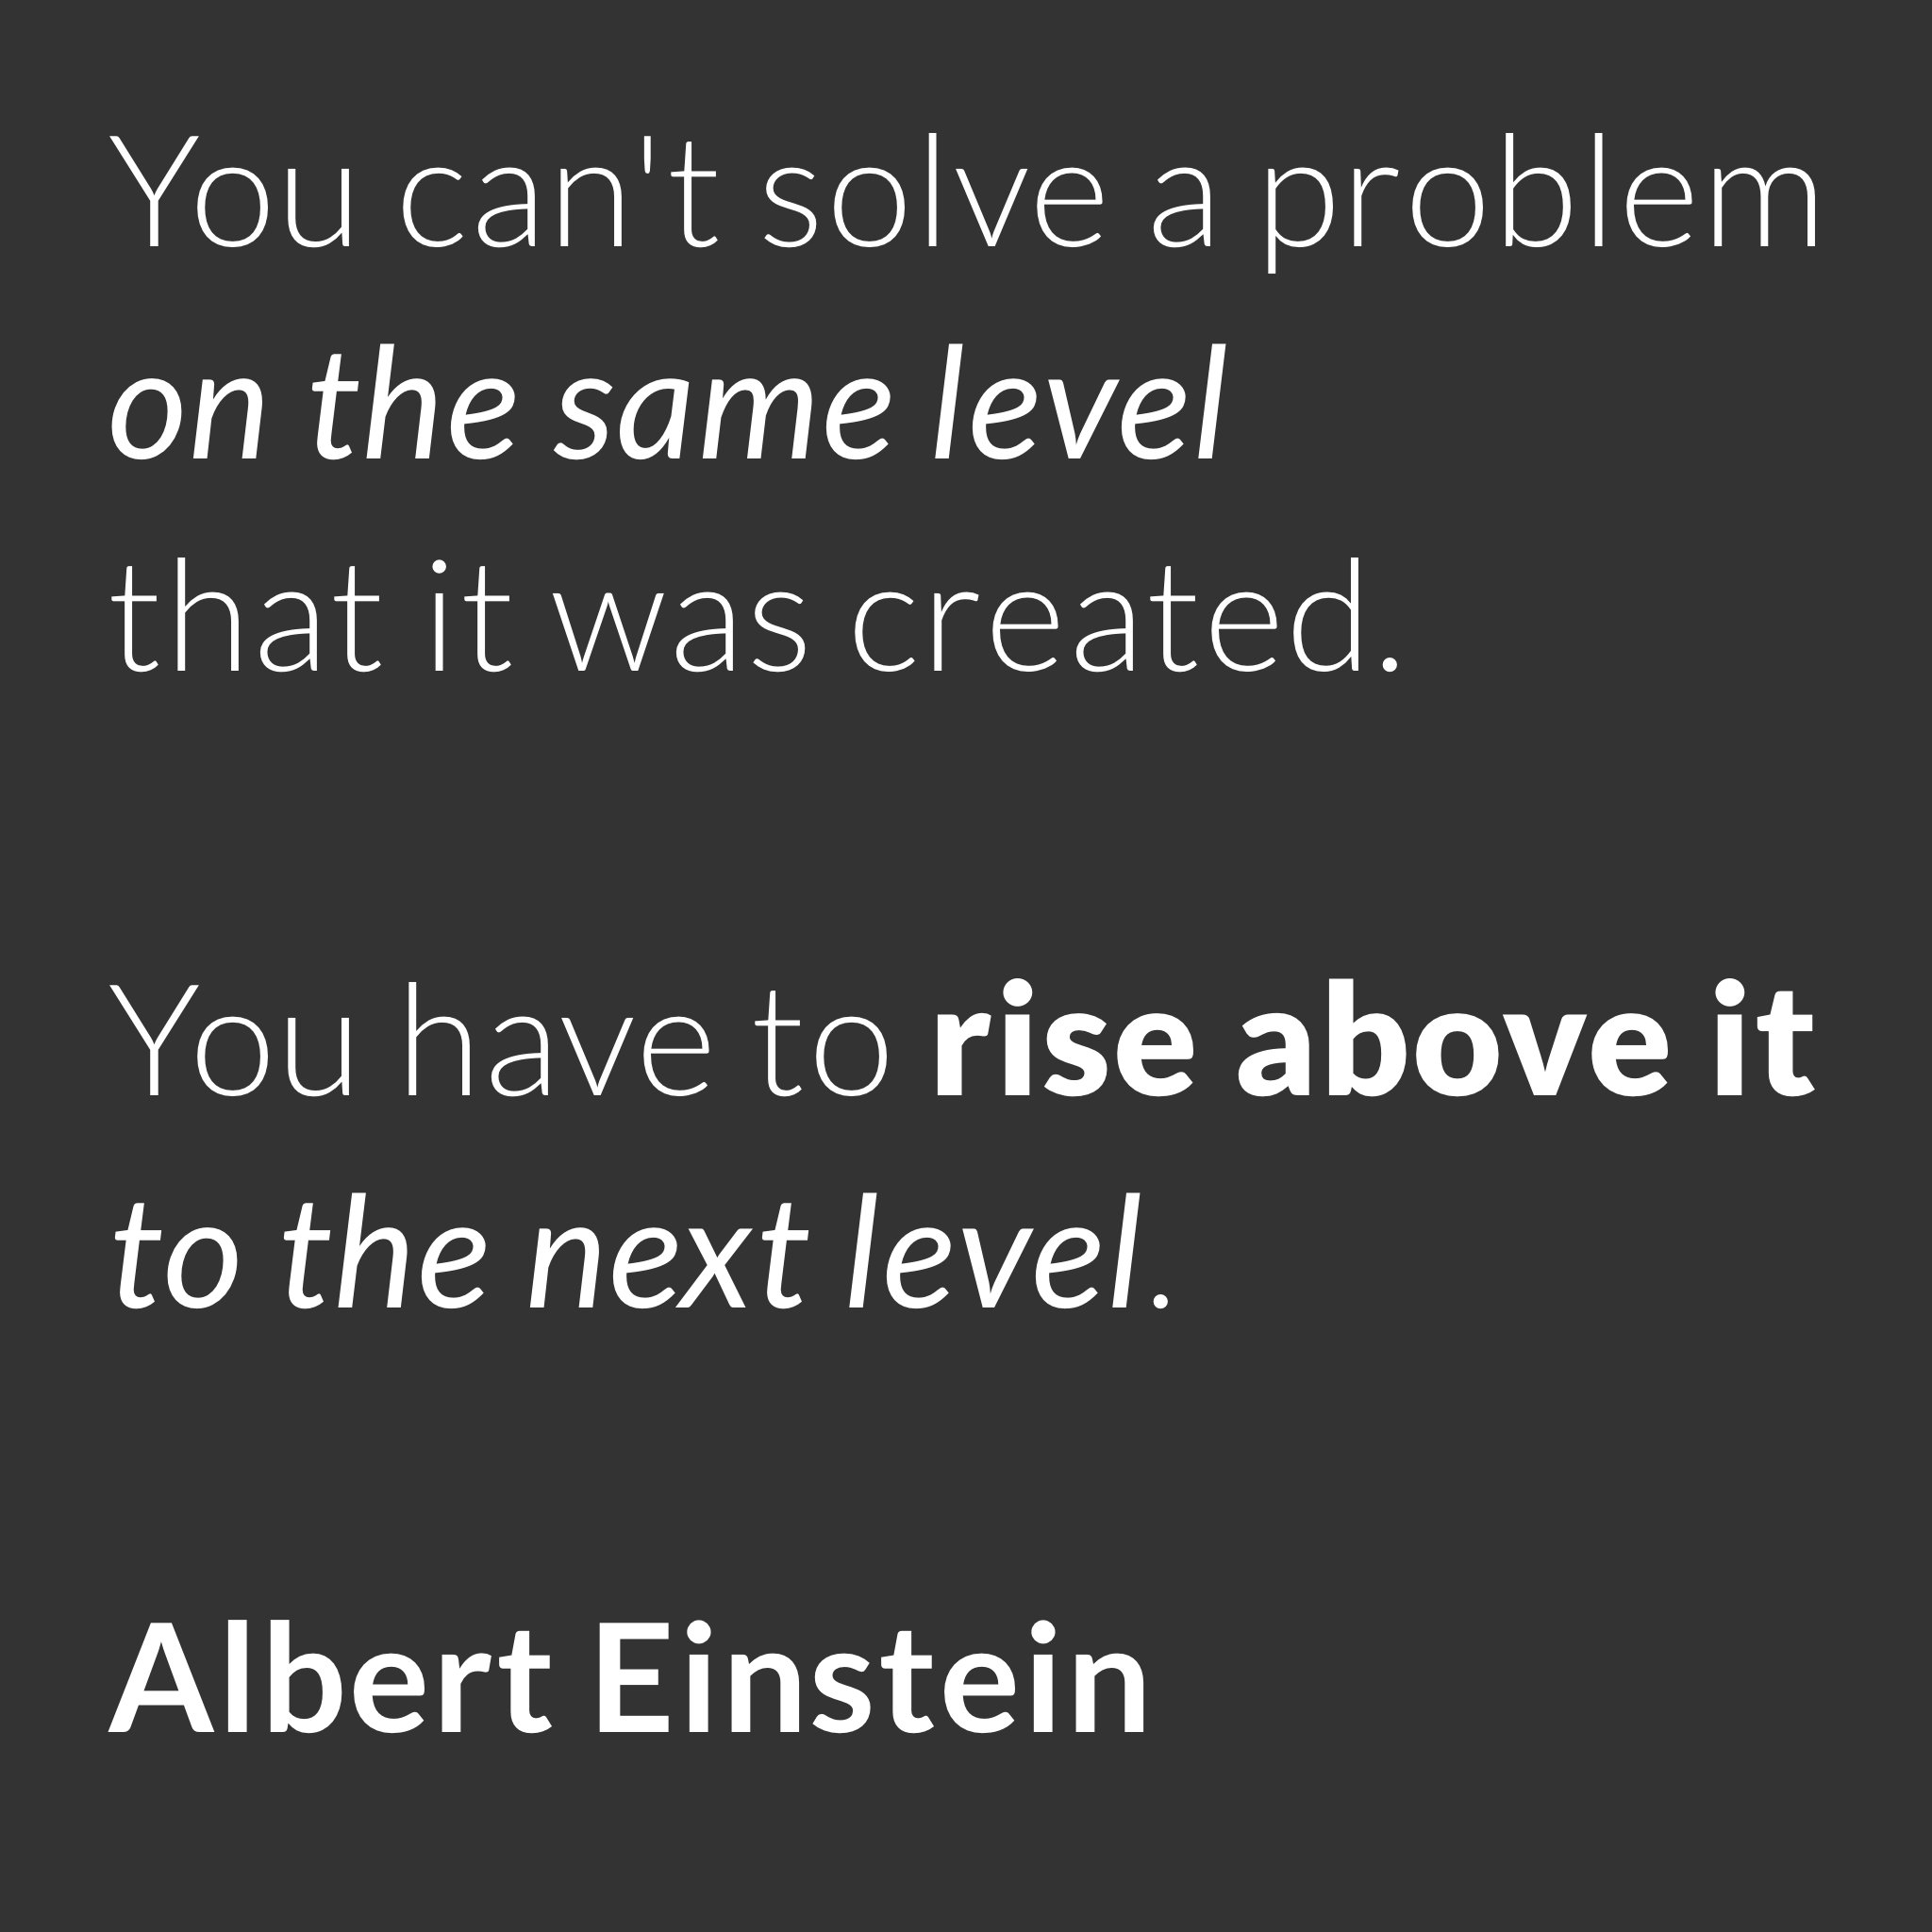 Some fresh inspiration for a brand-new week, from the master innovator no less. https://t.co/avg0ue1wbZ